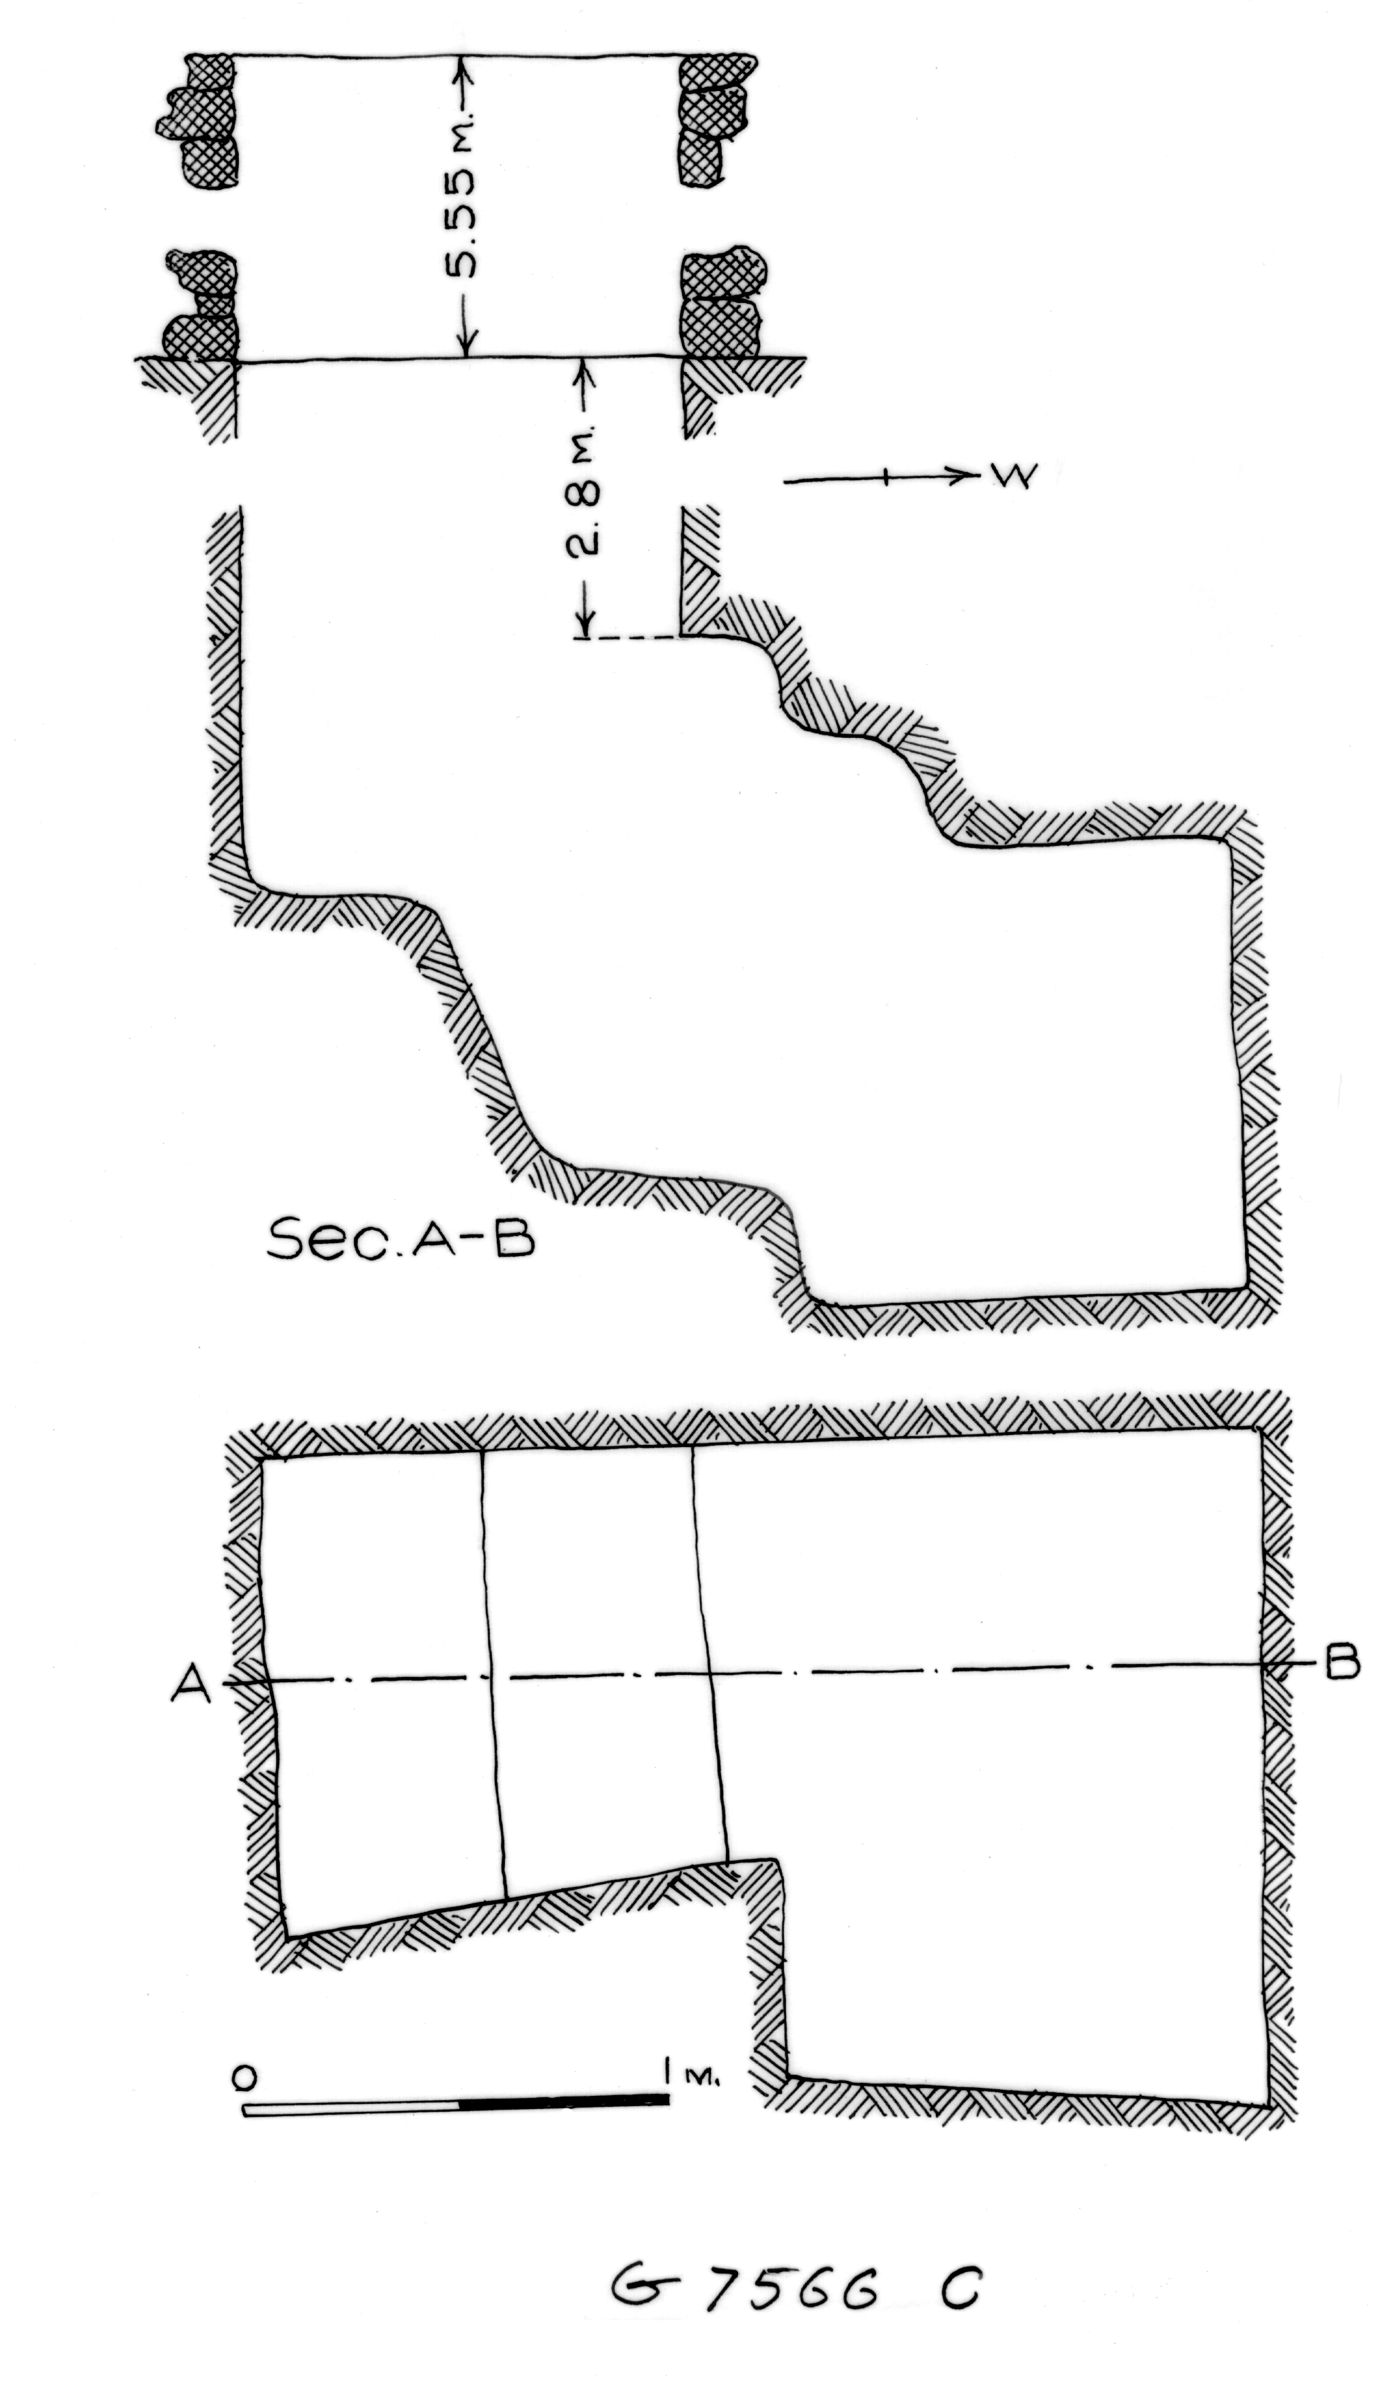 Maps and plans: G 7566, Shaft C